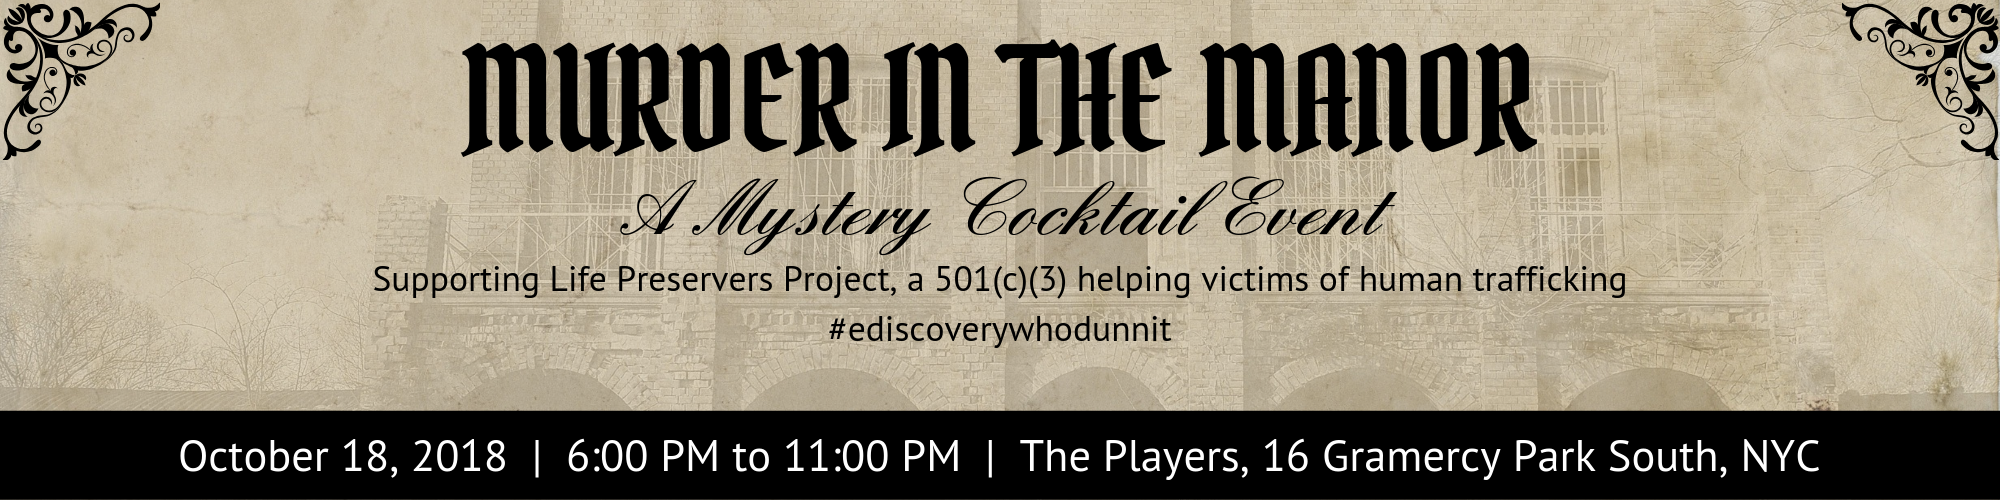 Murder in the Manor Event